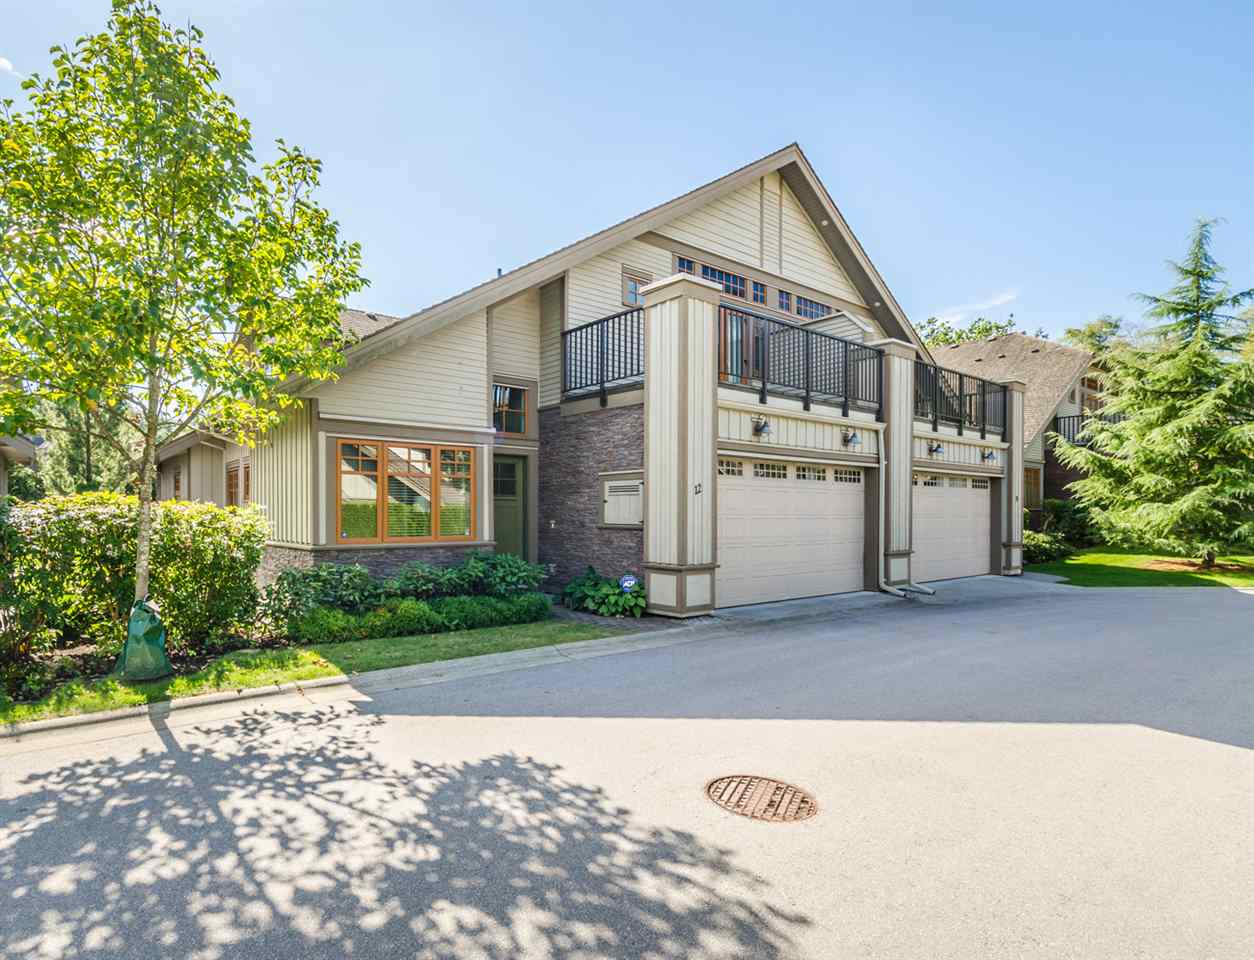 "Main Photo: 12 3109 161 Street in Surrey: Grandview Surrey Townhouse for sale in ""Wills Creek"" (South Surrey White Rock)  : MLS® # R2208120"